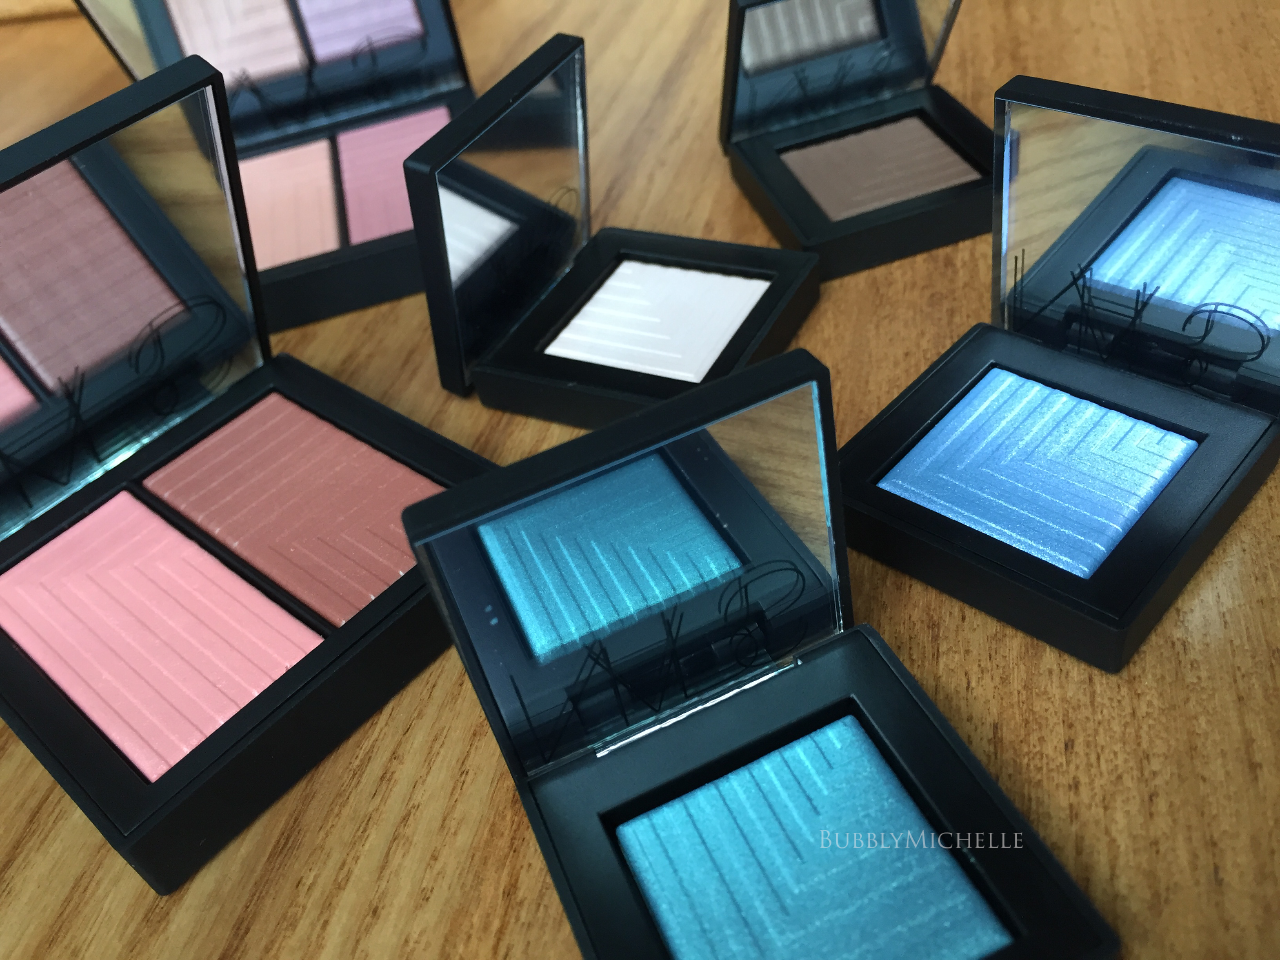 Quick post on NARS summer today! A drool-worthy collection I had the privilege of previewing while in Singapore just a few weeks back.